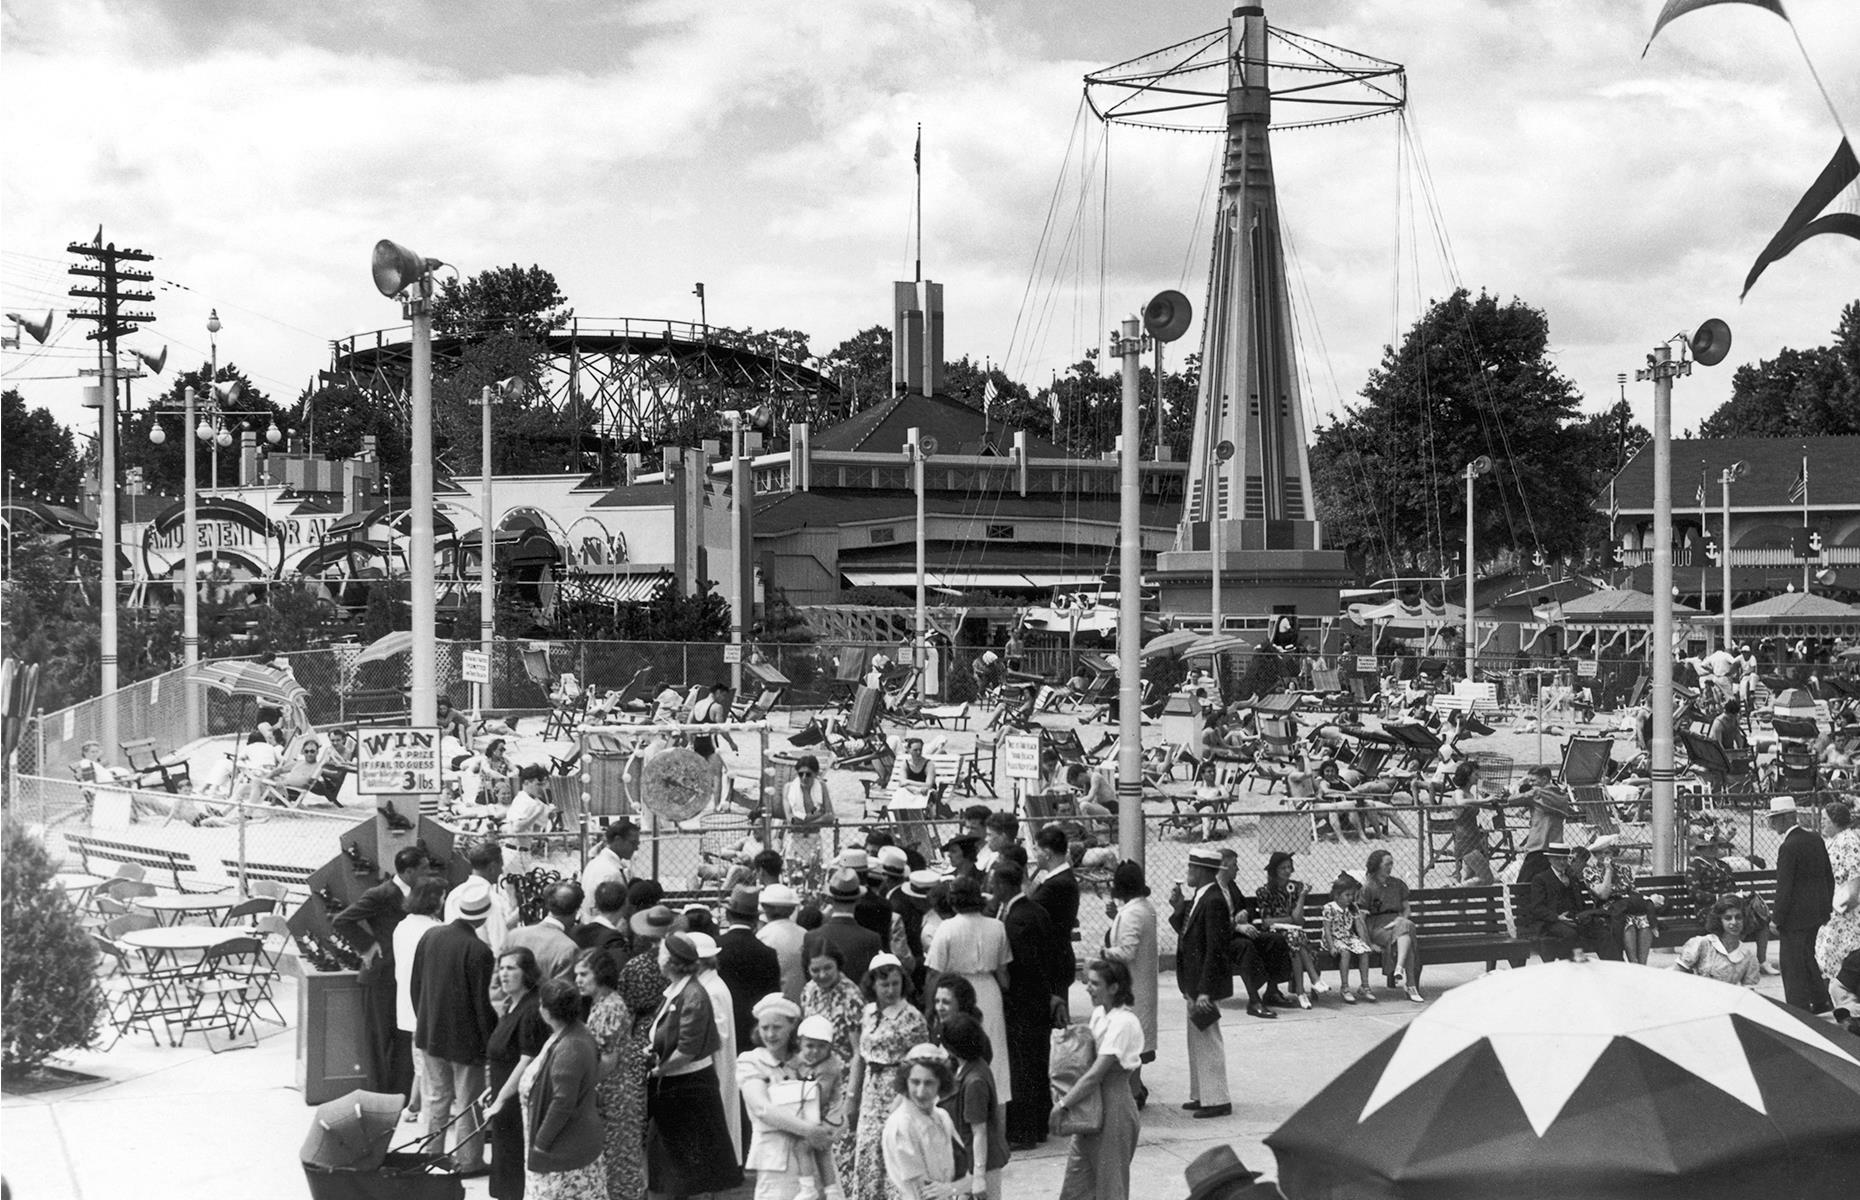 Slide 22 of 31: A stretch of sand and plenty of rides and roller coasters pulled visitors in to Palisades, a kitsch amusement park in New Jersey. It operated from the late 1890s right up until the 1970s. This nostalgic snap shows pleasure seekers milling about beneath the rides and on the little beach circa 1947. Check out more historic photos of theme parks in their heyday.